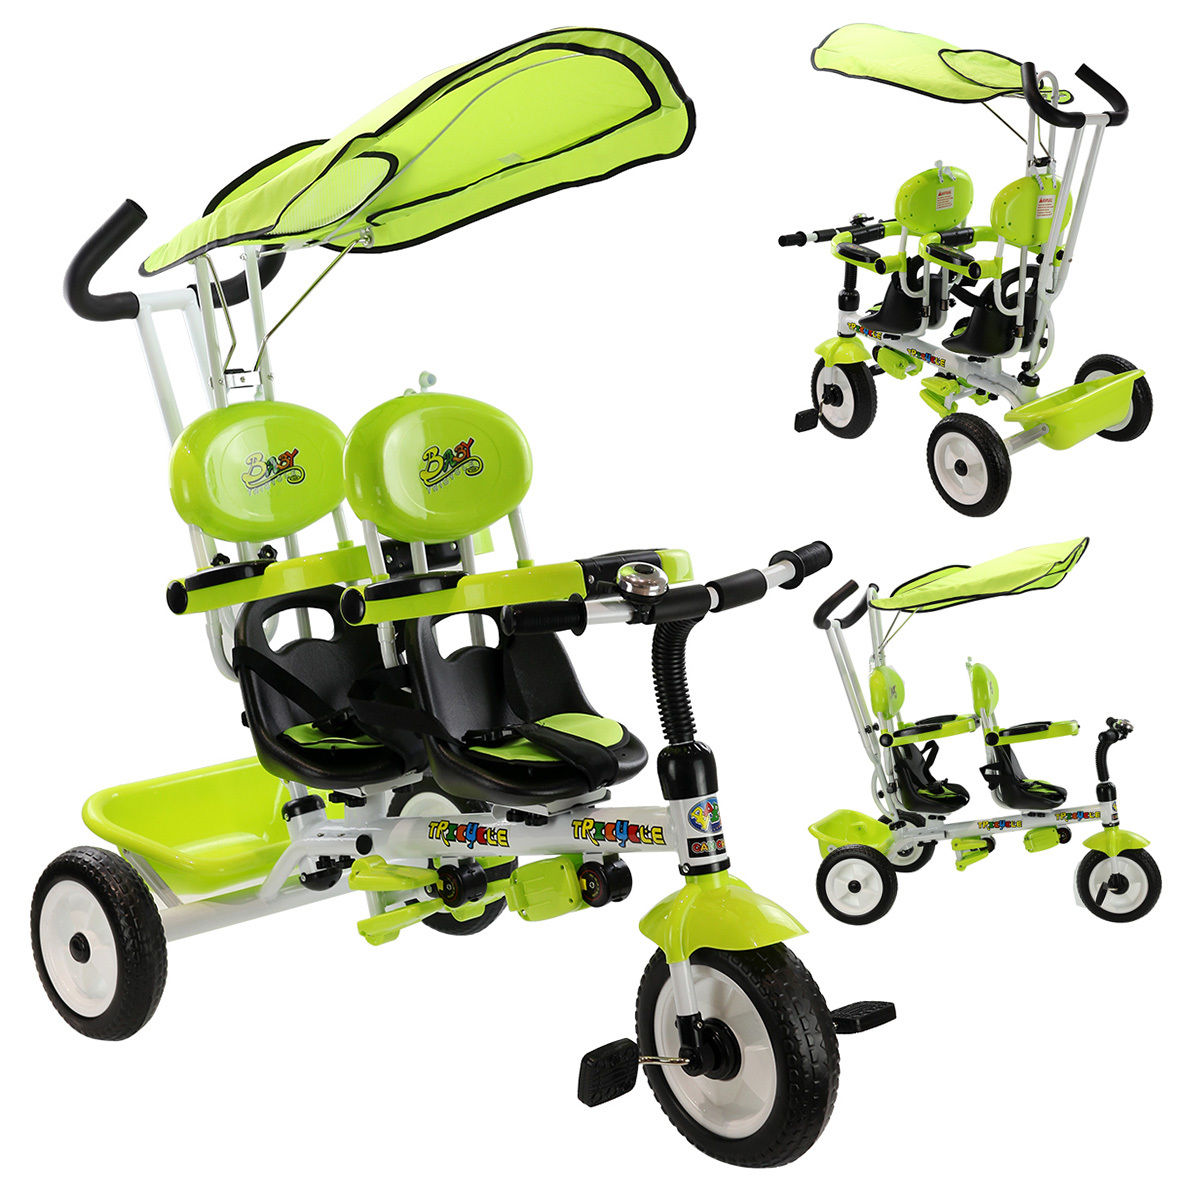 Costway 4 In 1 Twins Kids Baby Stroller Tricycle Safety Double Rotatable Seat w  Basket Green by Costway